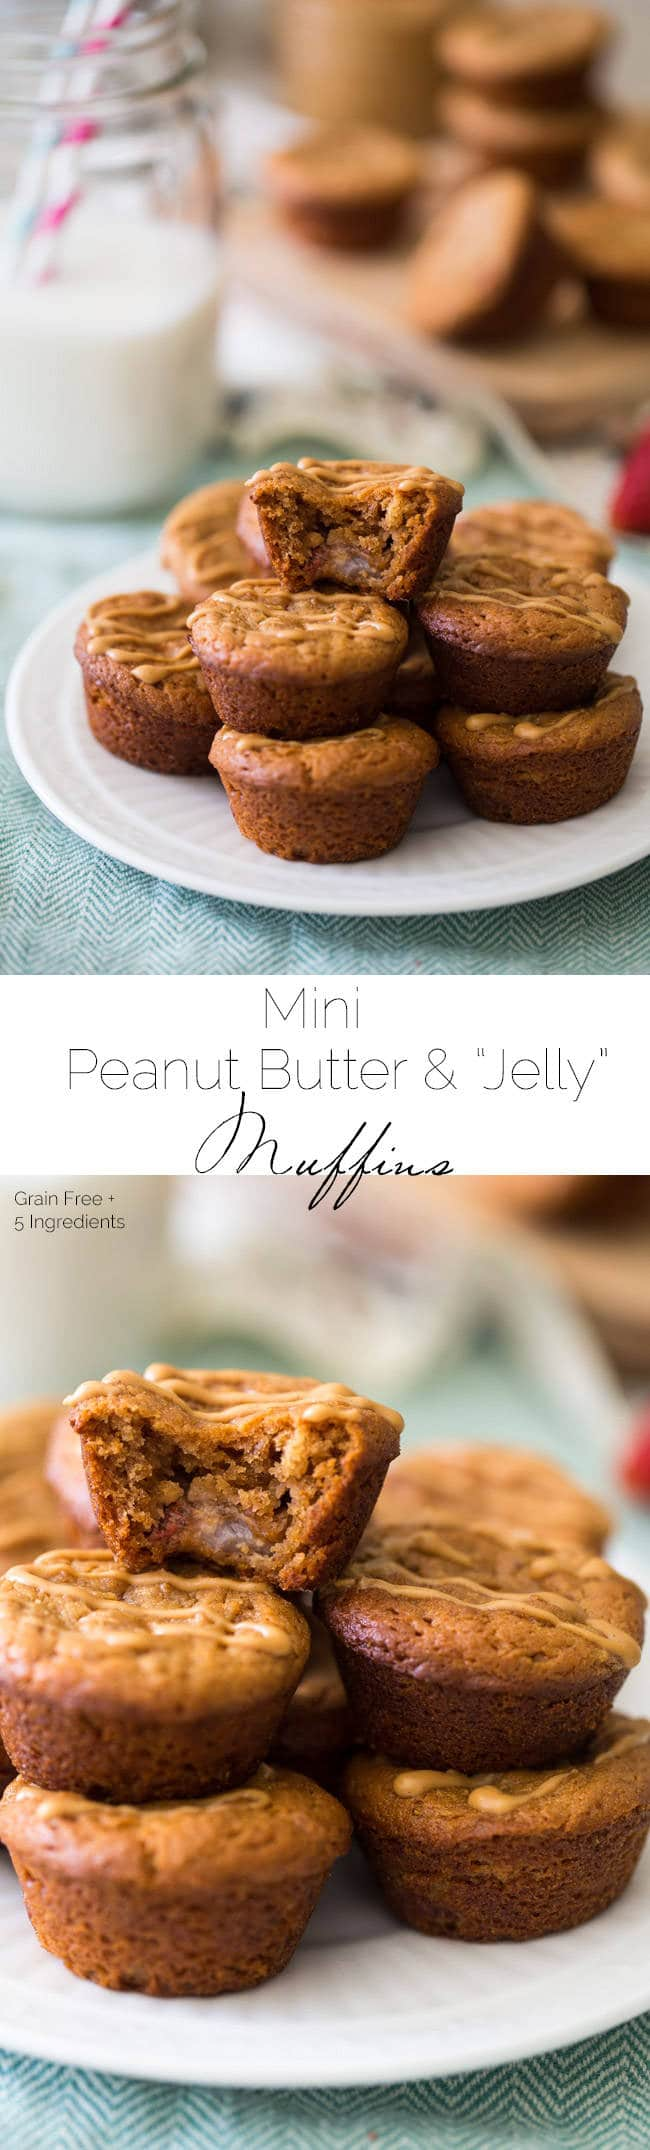 Mini Peanut Butter Muffins with Strawberries - These gluten and grain free muffins are made in the food processor and are ready in 15 minutes! Perfect for a healthy, portable, breakfast or snack! | Foodfaithfitness.com | @FoodFaithFit